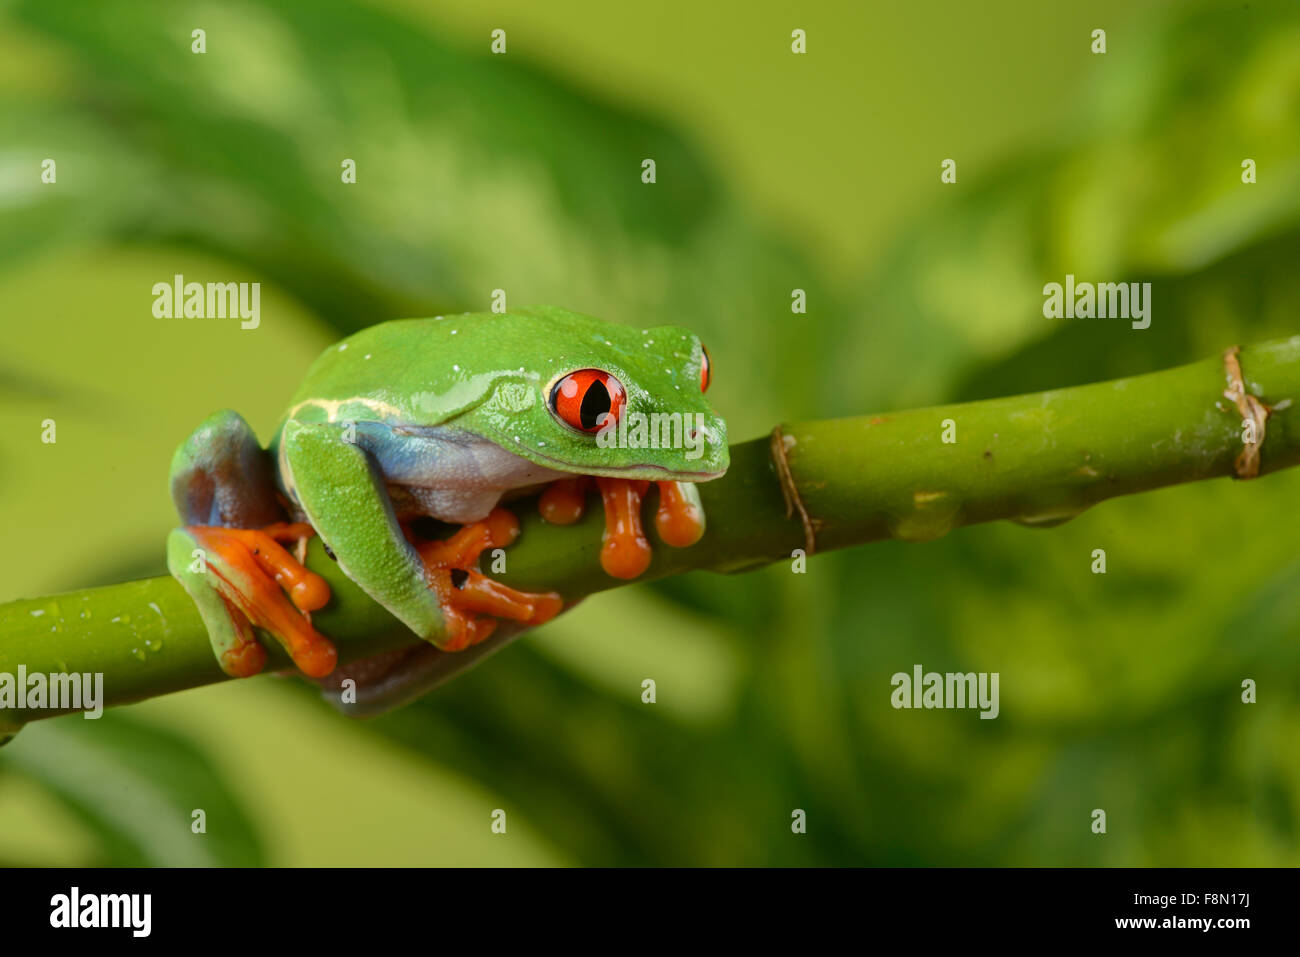 Red-Eyed Tree Frog (Agalychnis callidryas). Controlled, studio - Stock Image